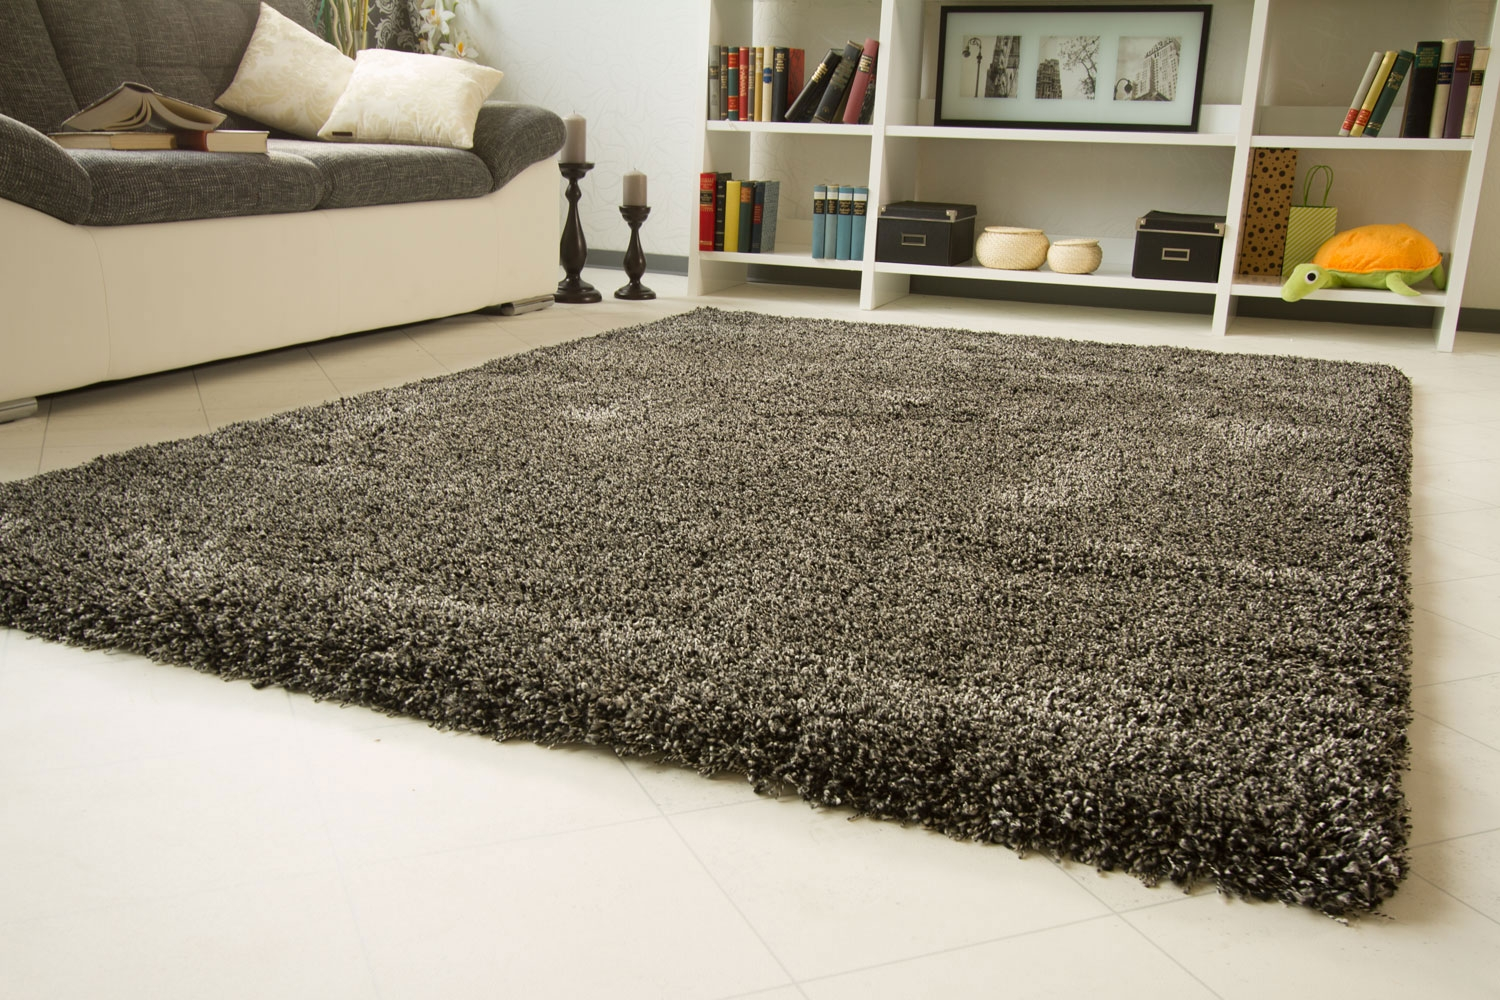 58 High Pile Carpet Best Vacuum For High Pile Carpet Of 2016 With Regard To Deep Shag Pile Carpets (Image 4 of 15)